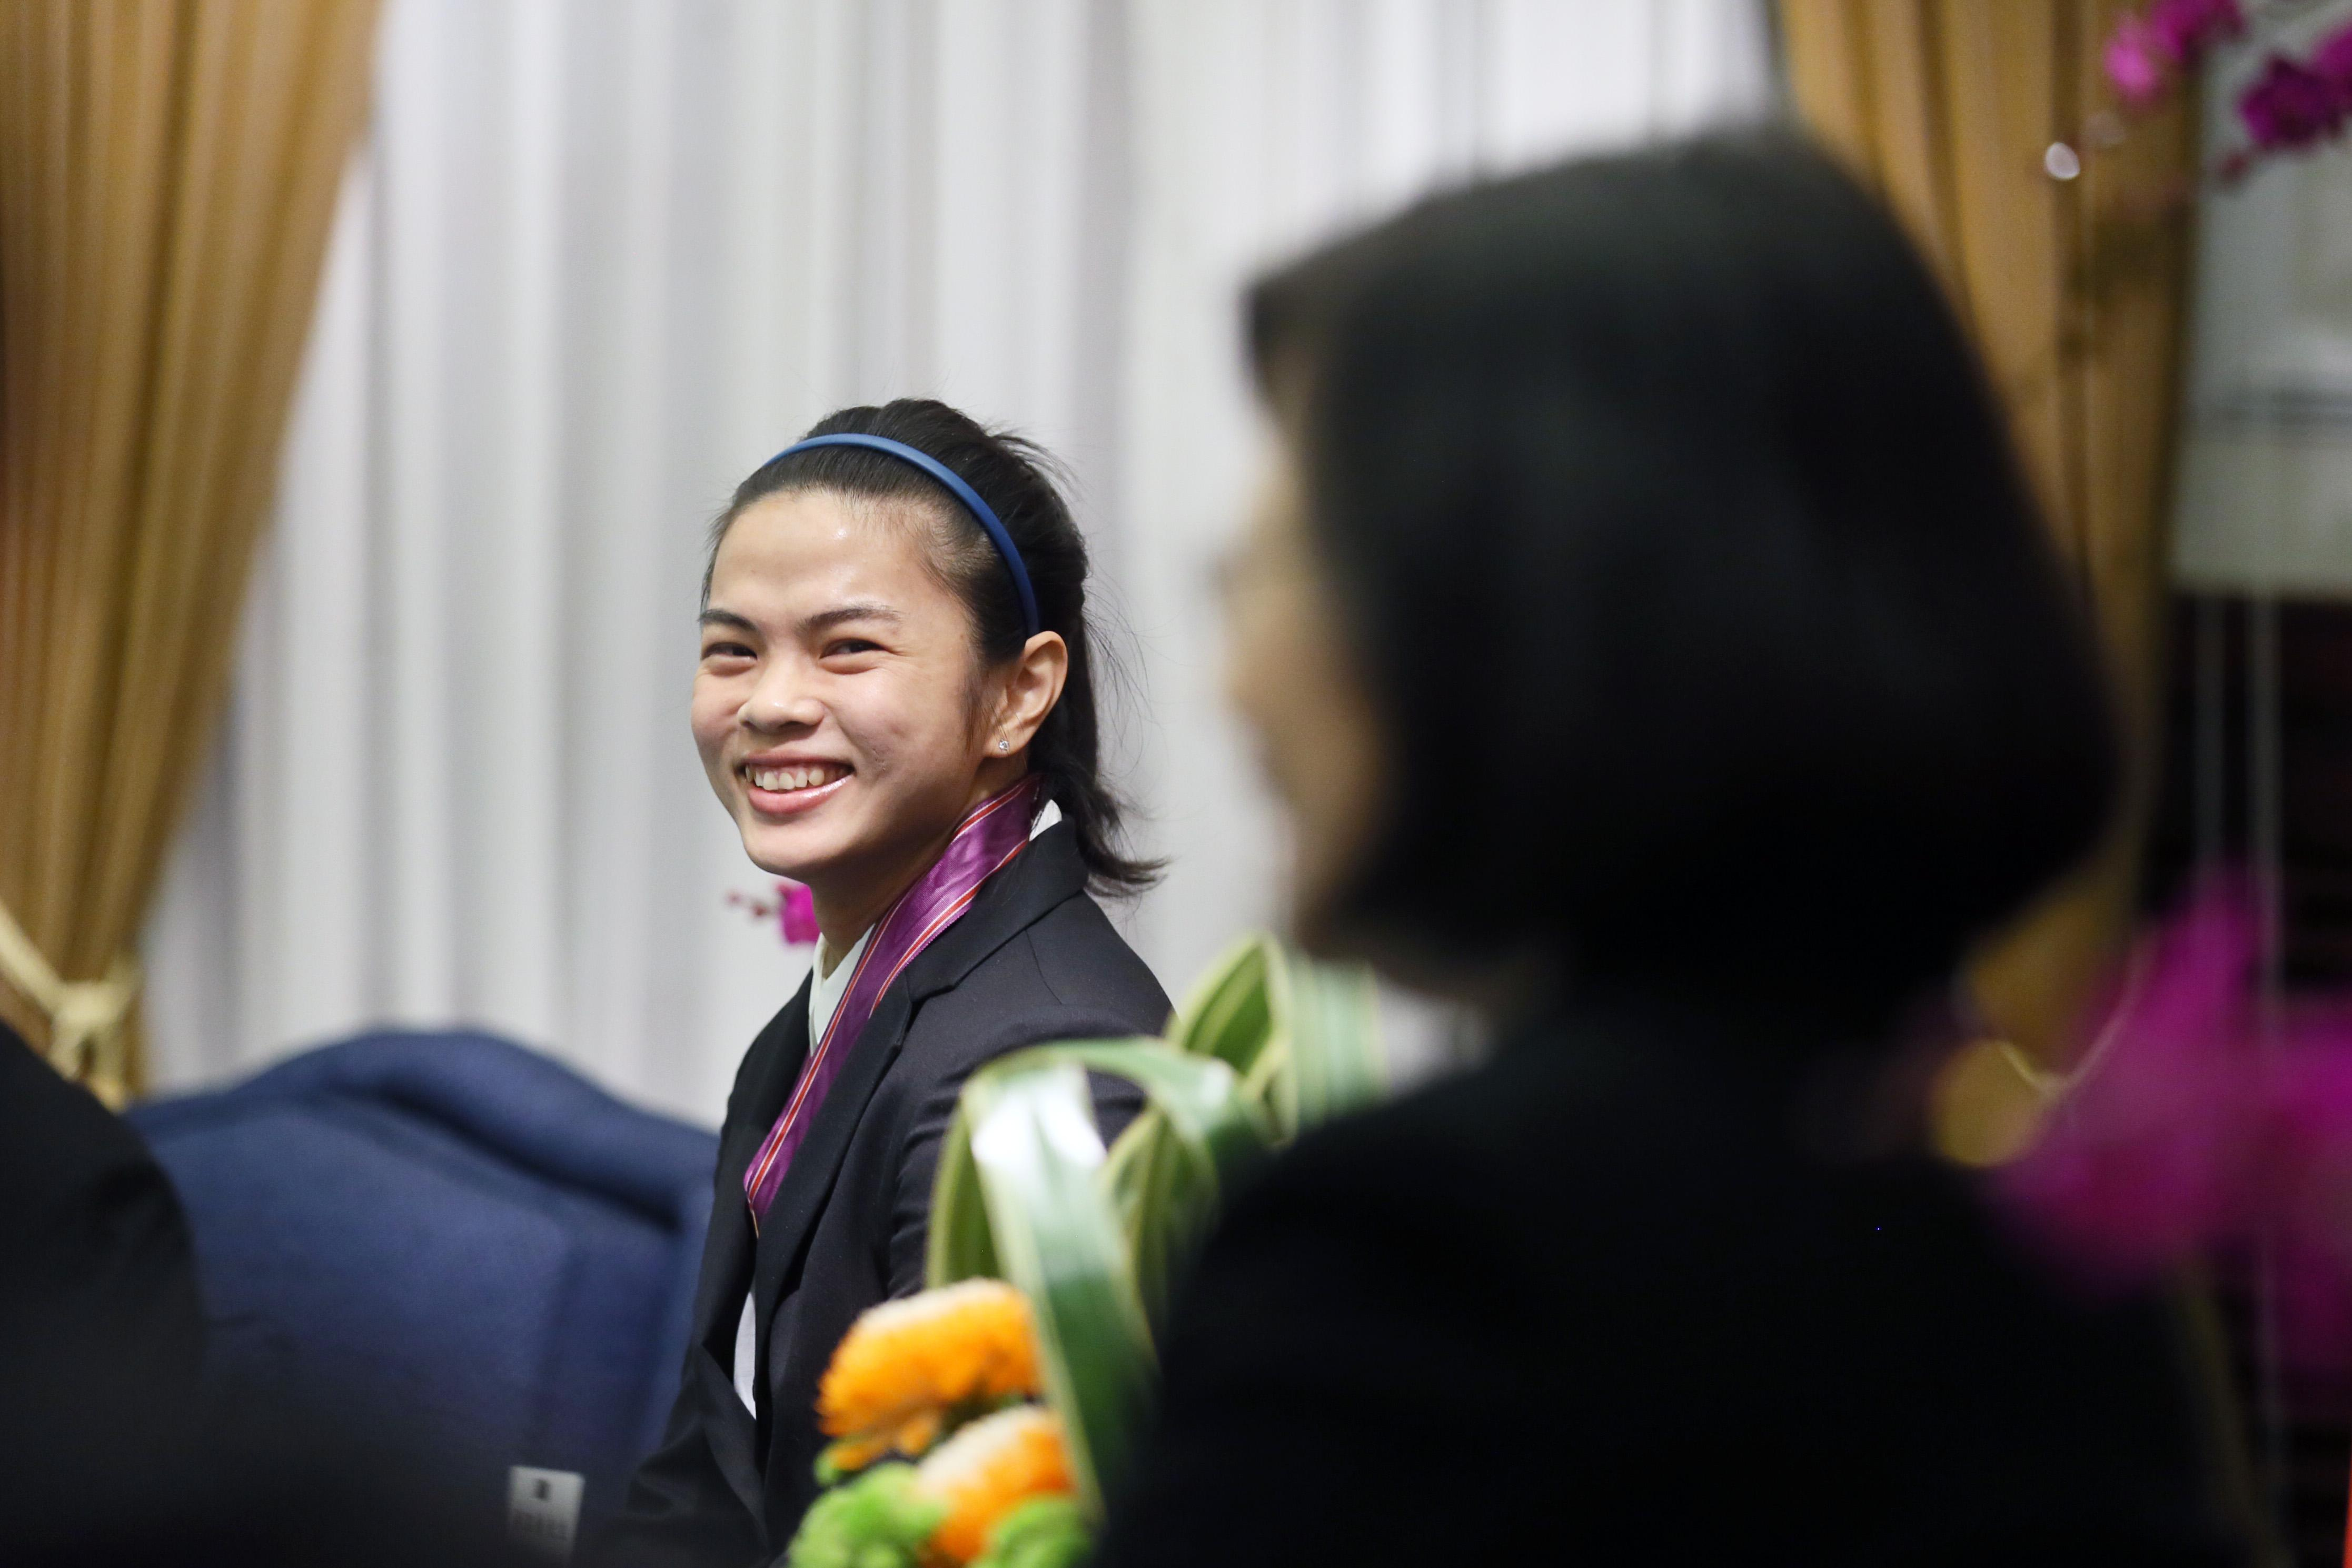 The 27-year old daughter of father (?) and mother(?) Hsu Shu-ching in 2018 photo. Hsu Shu-ching earned a  million dollar salary - leaving the net worth at 0.1 million in 2018